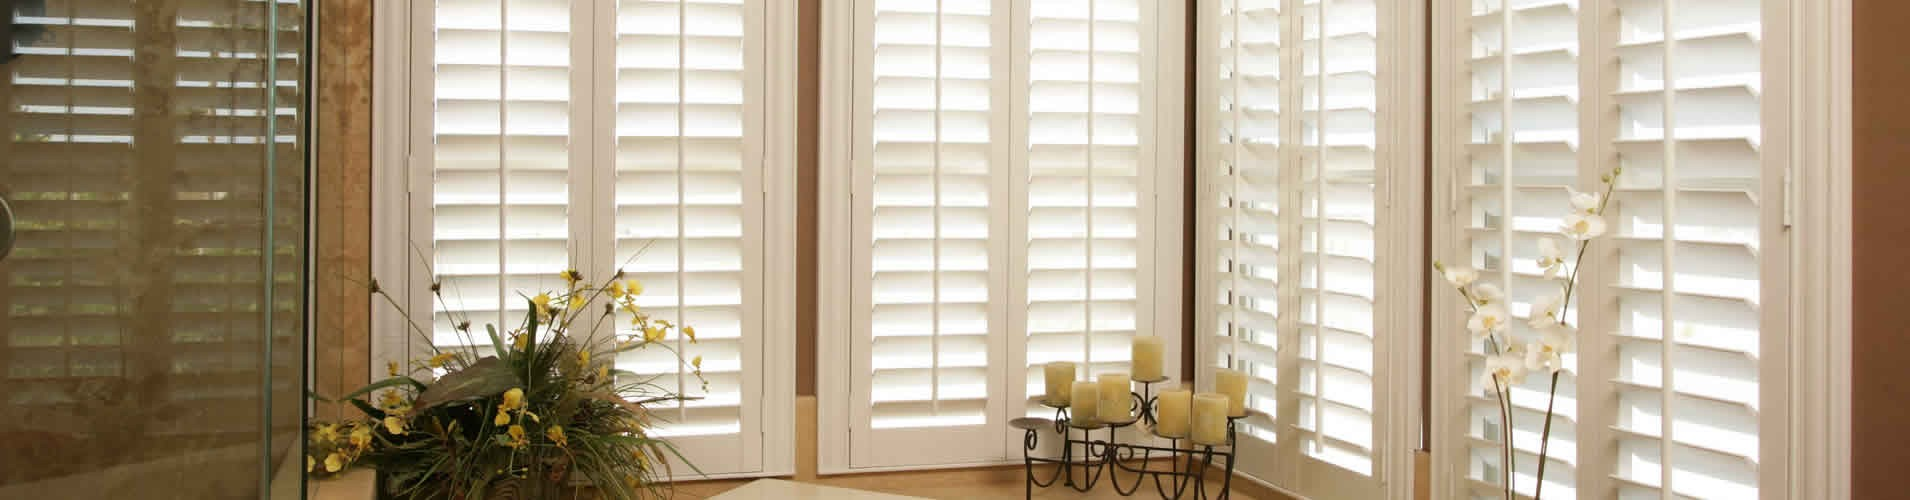 Dallas Plantation Shutters